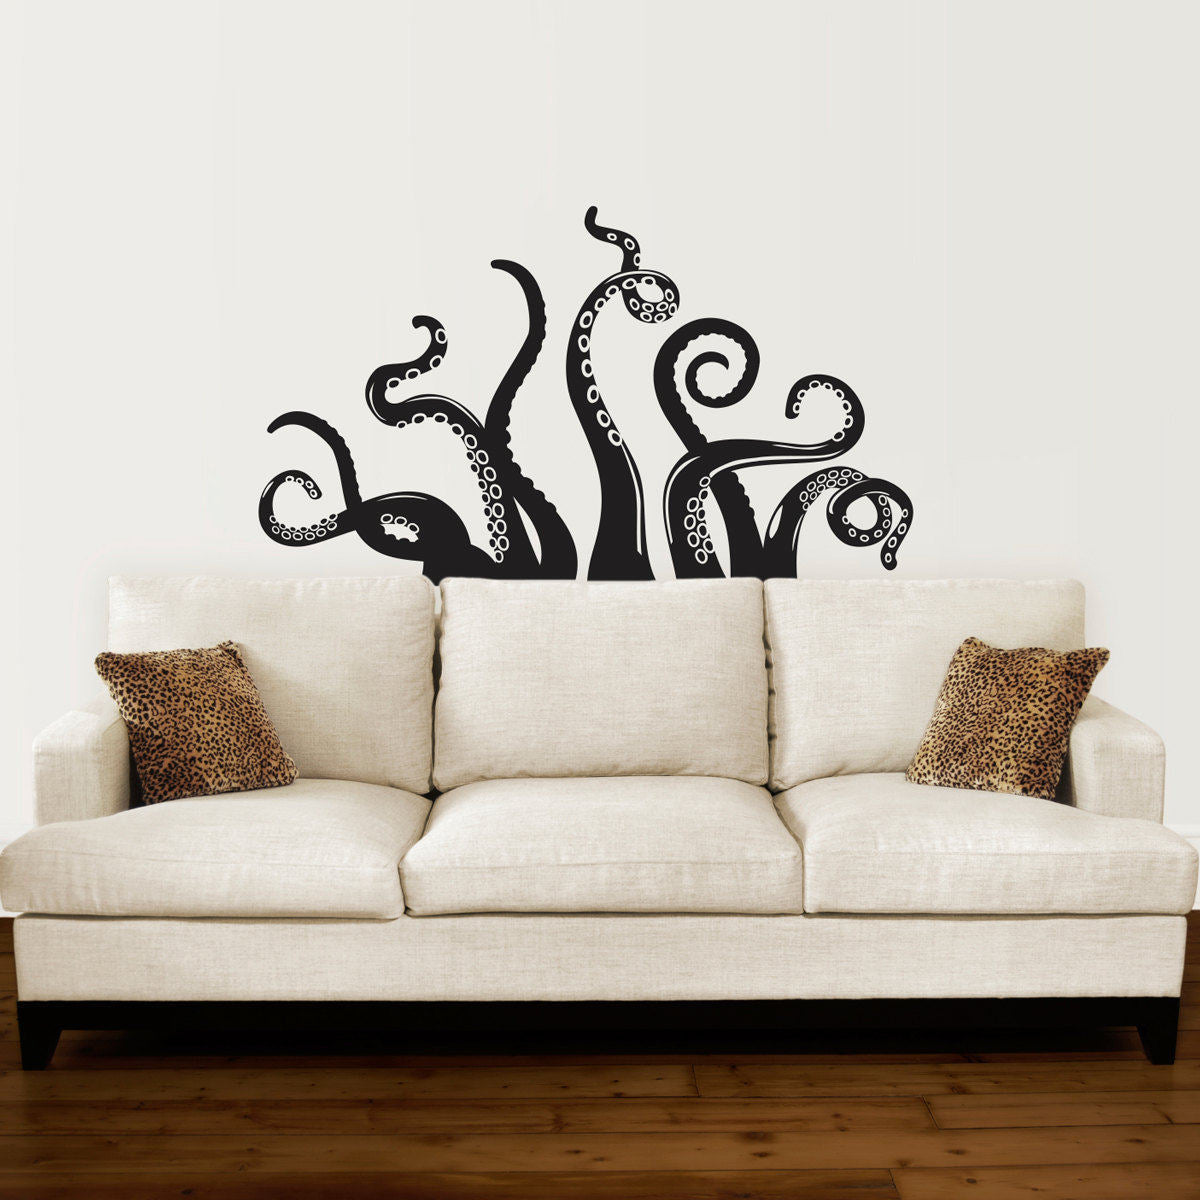 Octopus Tentacle Decal   Living Room Decor   Octopus Wall Sticker   Stephen  Edward Graphics